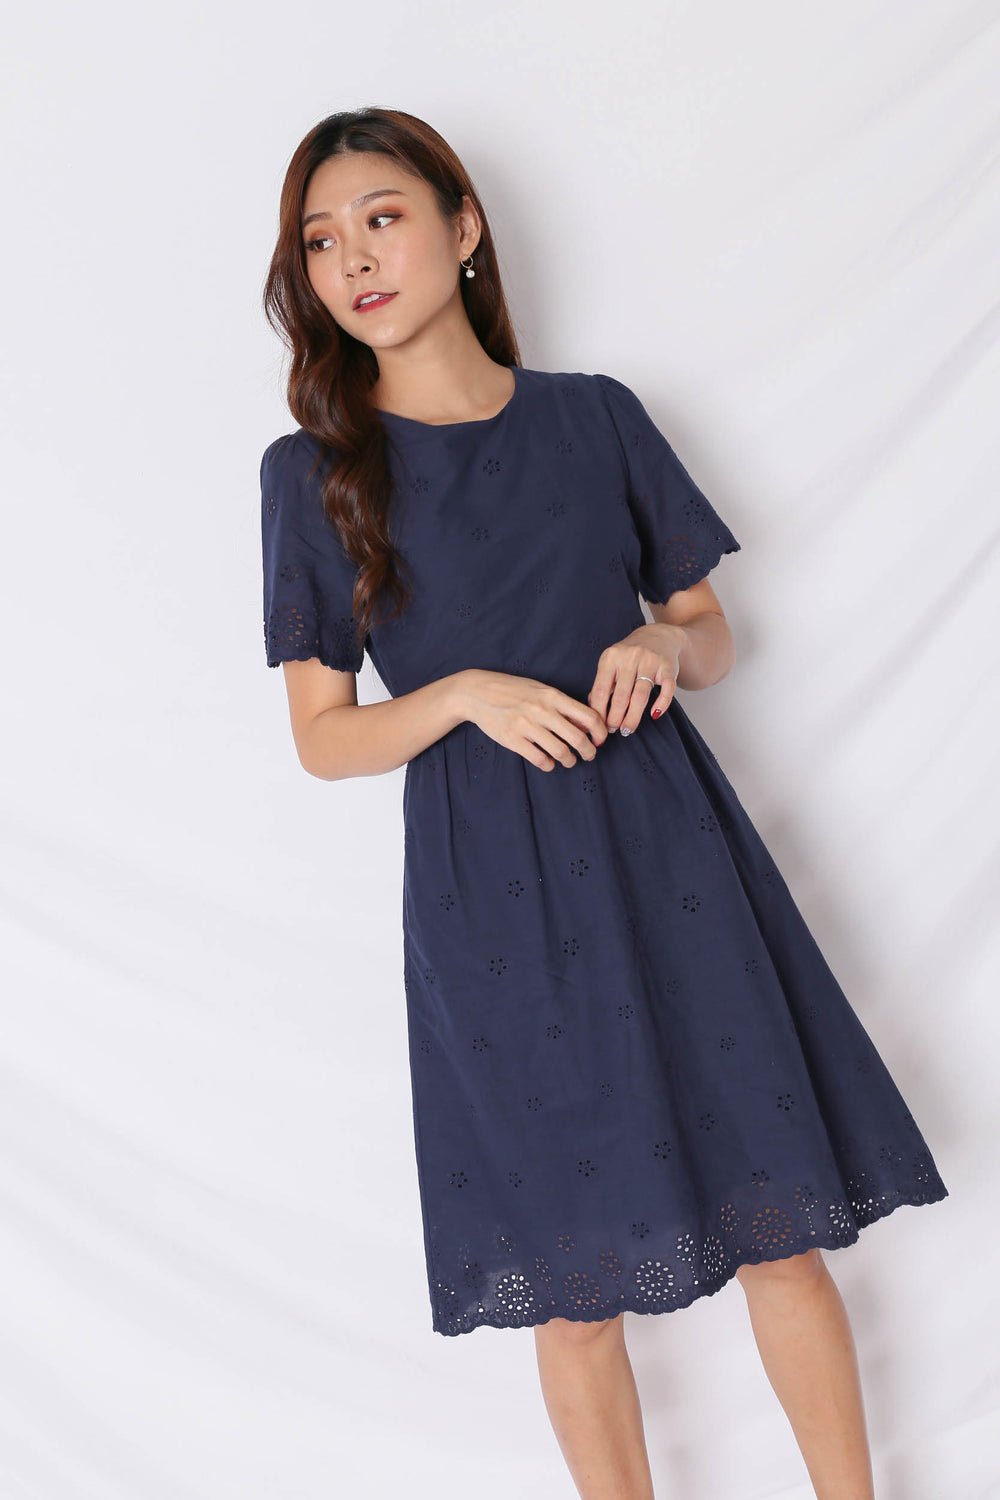 (PREMIUM) HALLY EYELET DRESS IN NAVY